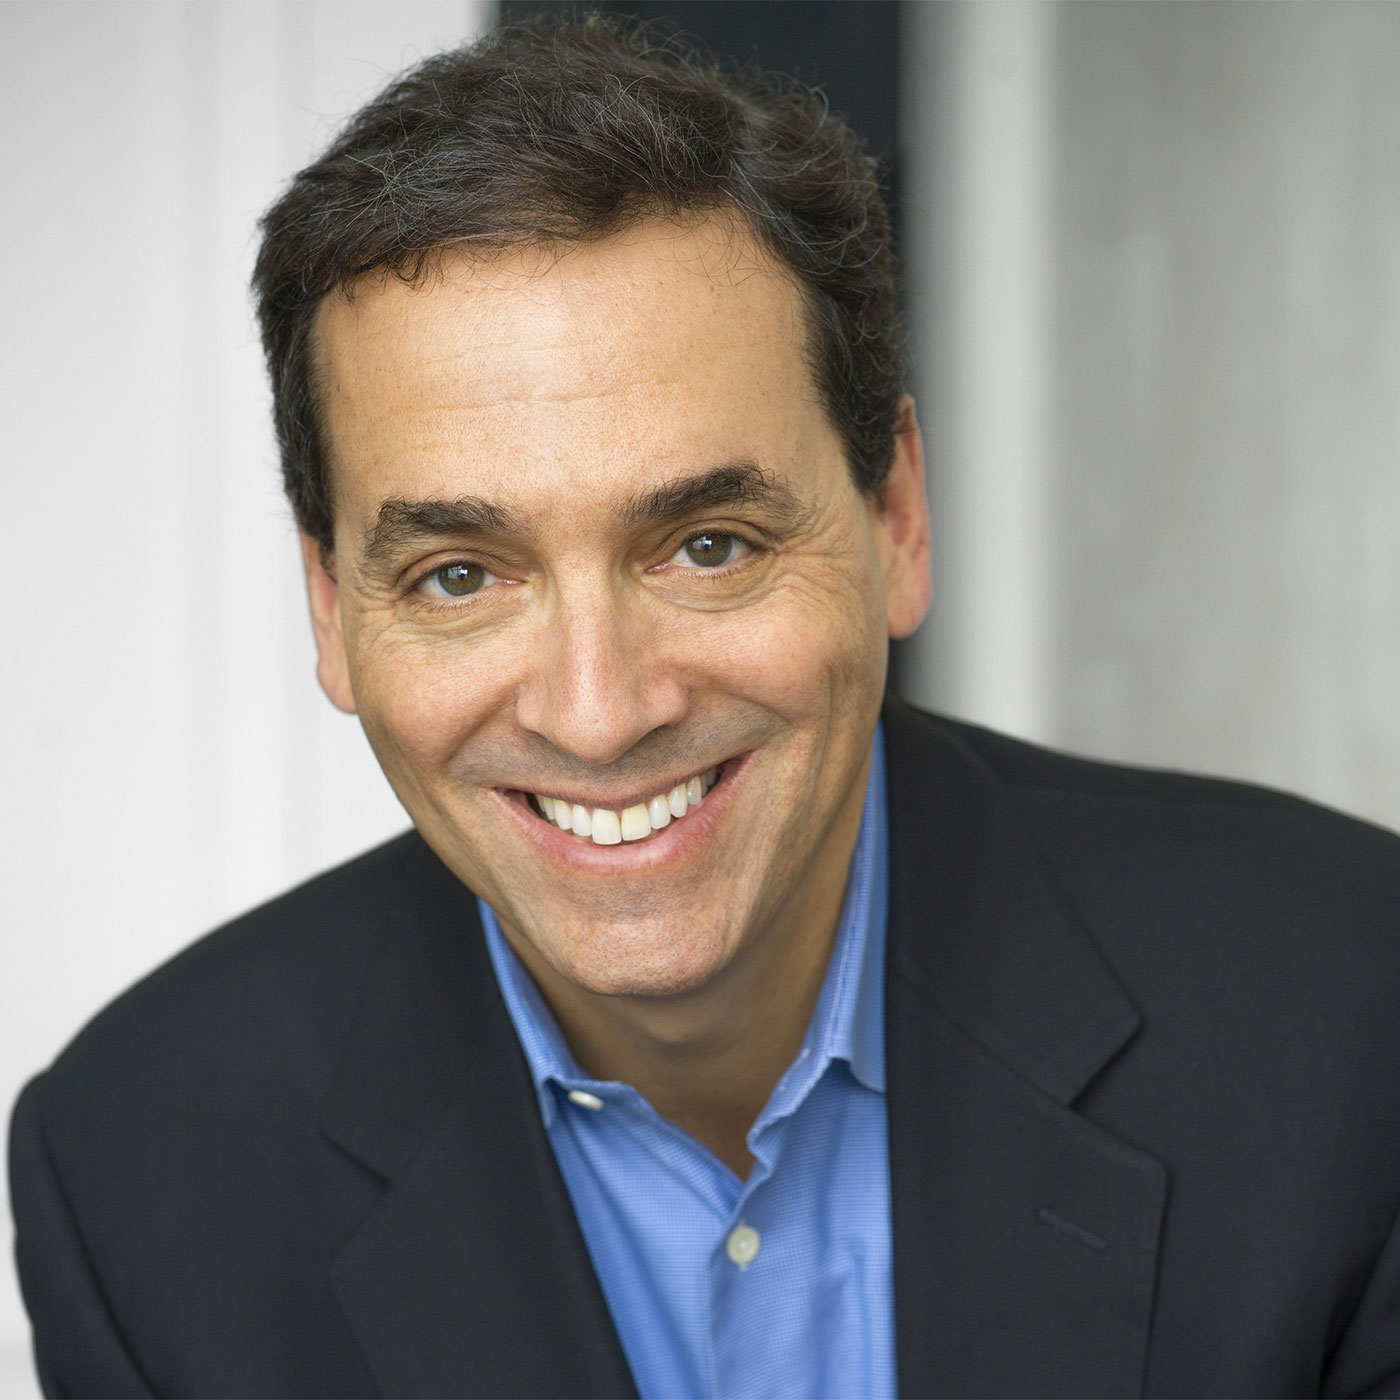 63: Daniel Pink | When Is the Best Time to Get Things Done?